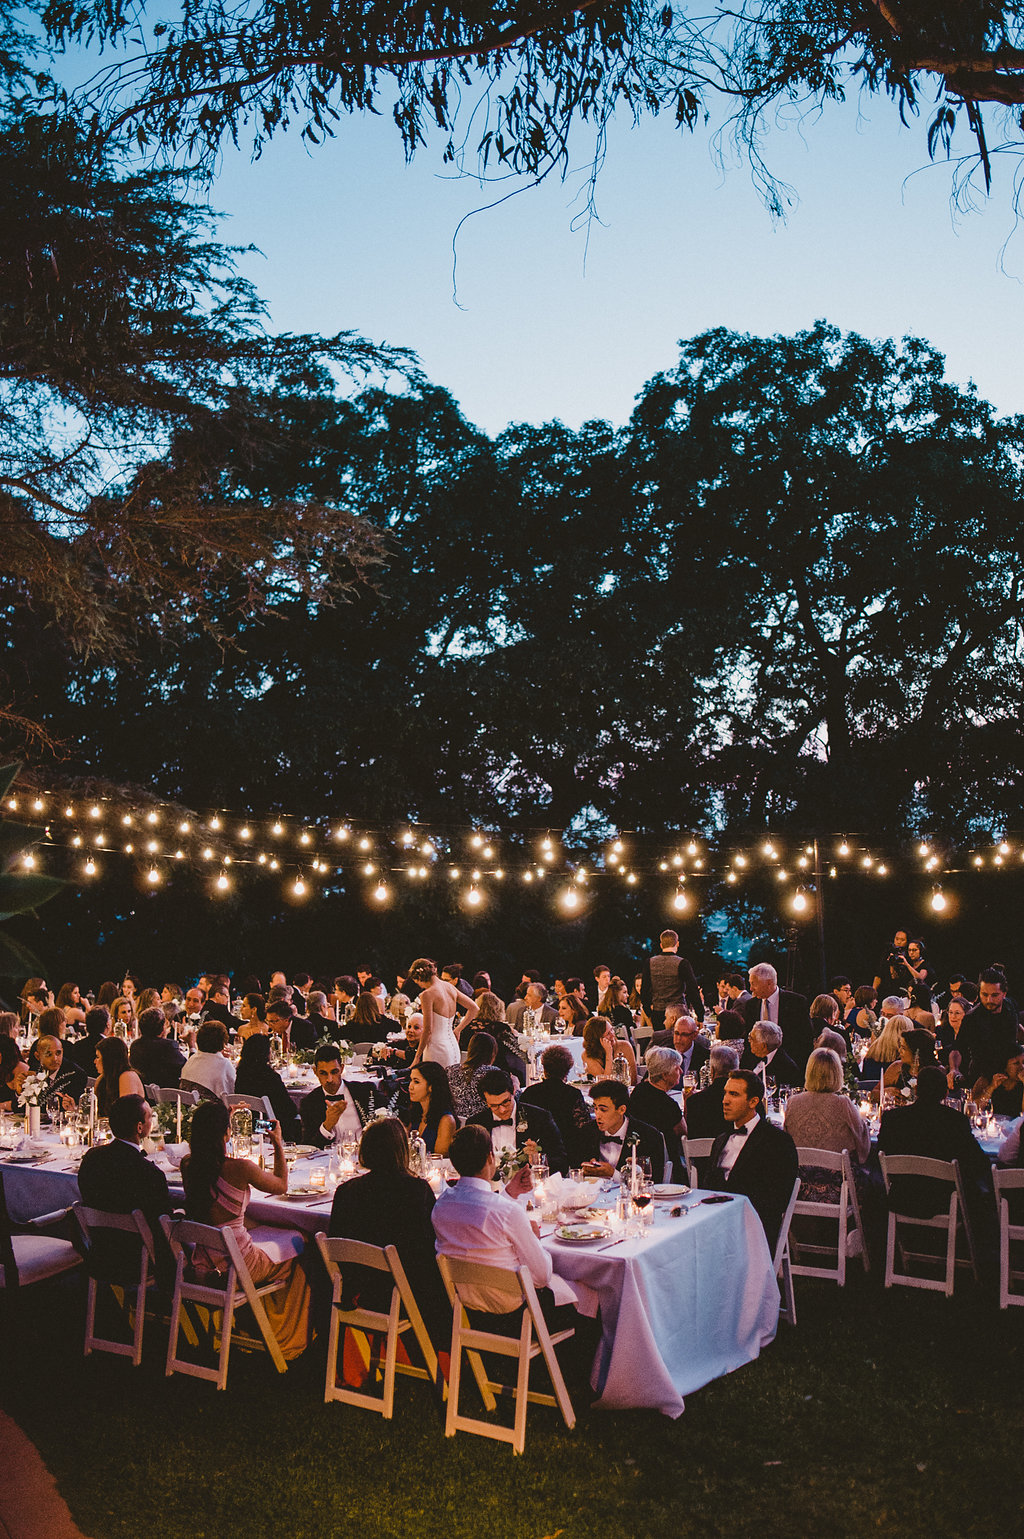 Paramour Estate Wedding, Upper Lawn All White Modern, Minimal, & Romantic Black Tie Dinner Reception at Paramour Mansion, Los Angeles Venue, Planning by Art & Soul Events, EP Love Photography, Alfresco Dining under bistro lights